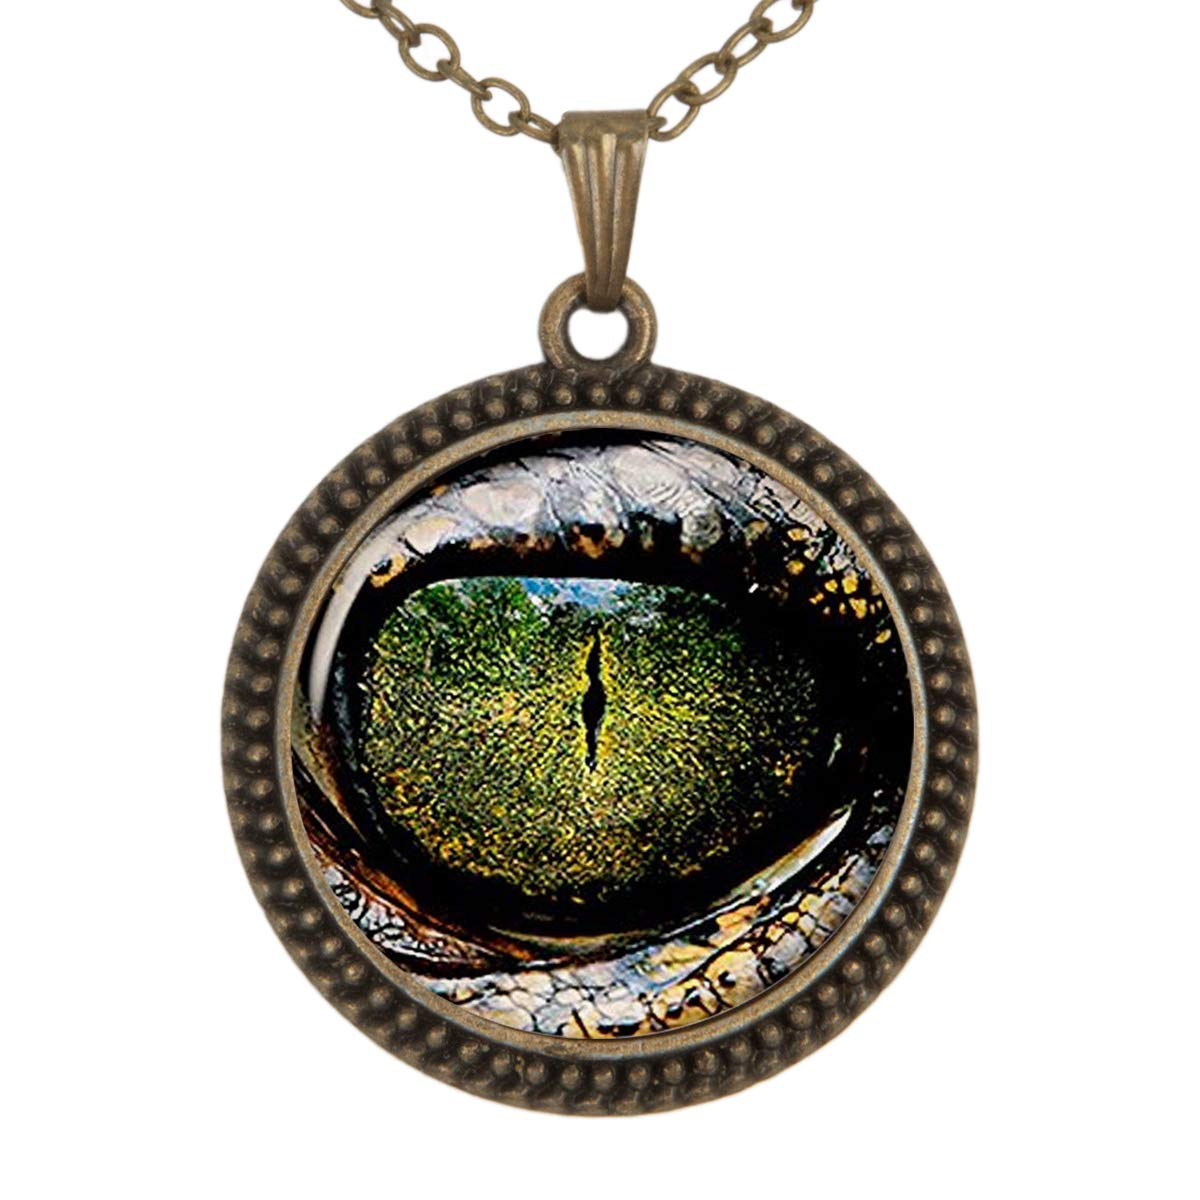 Family Decor Green Animal Eyes World Pendant Necklace Cabochon Glass Vintage Bronze Chain Necklace Jewelry Handmade